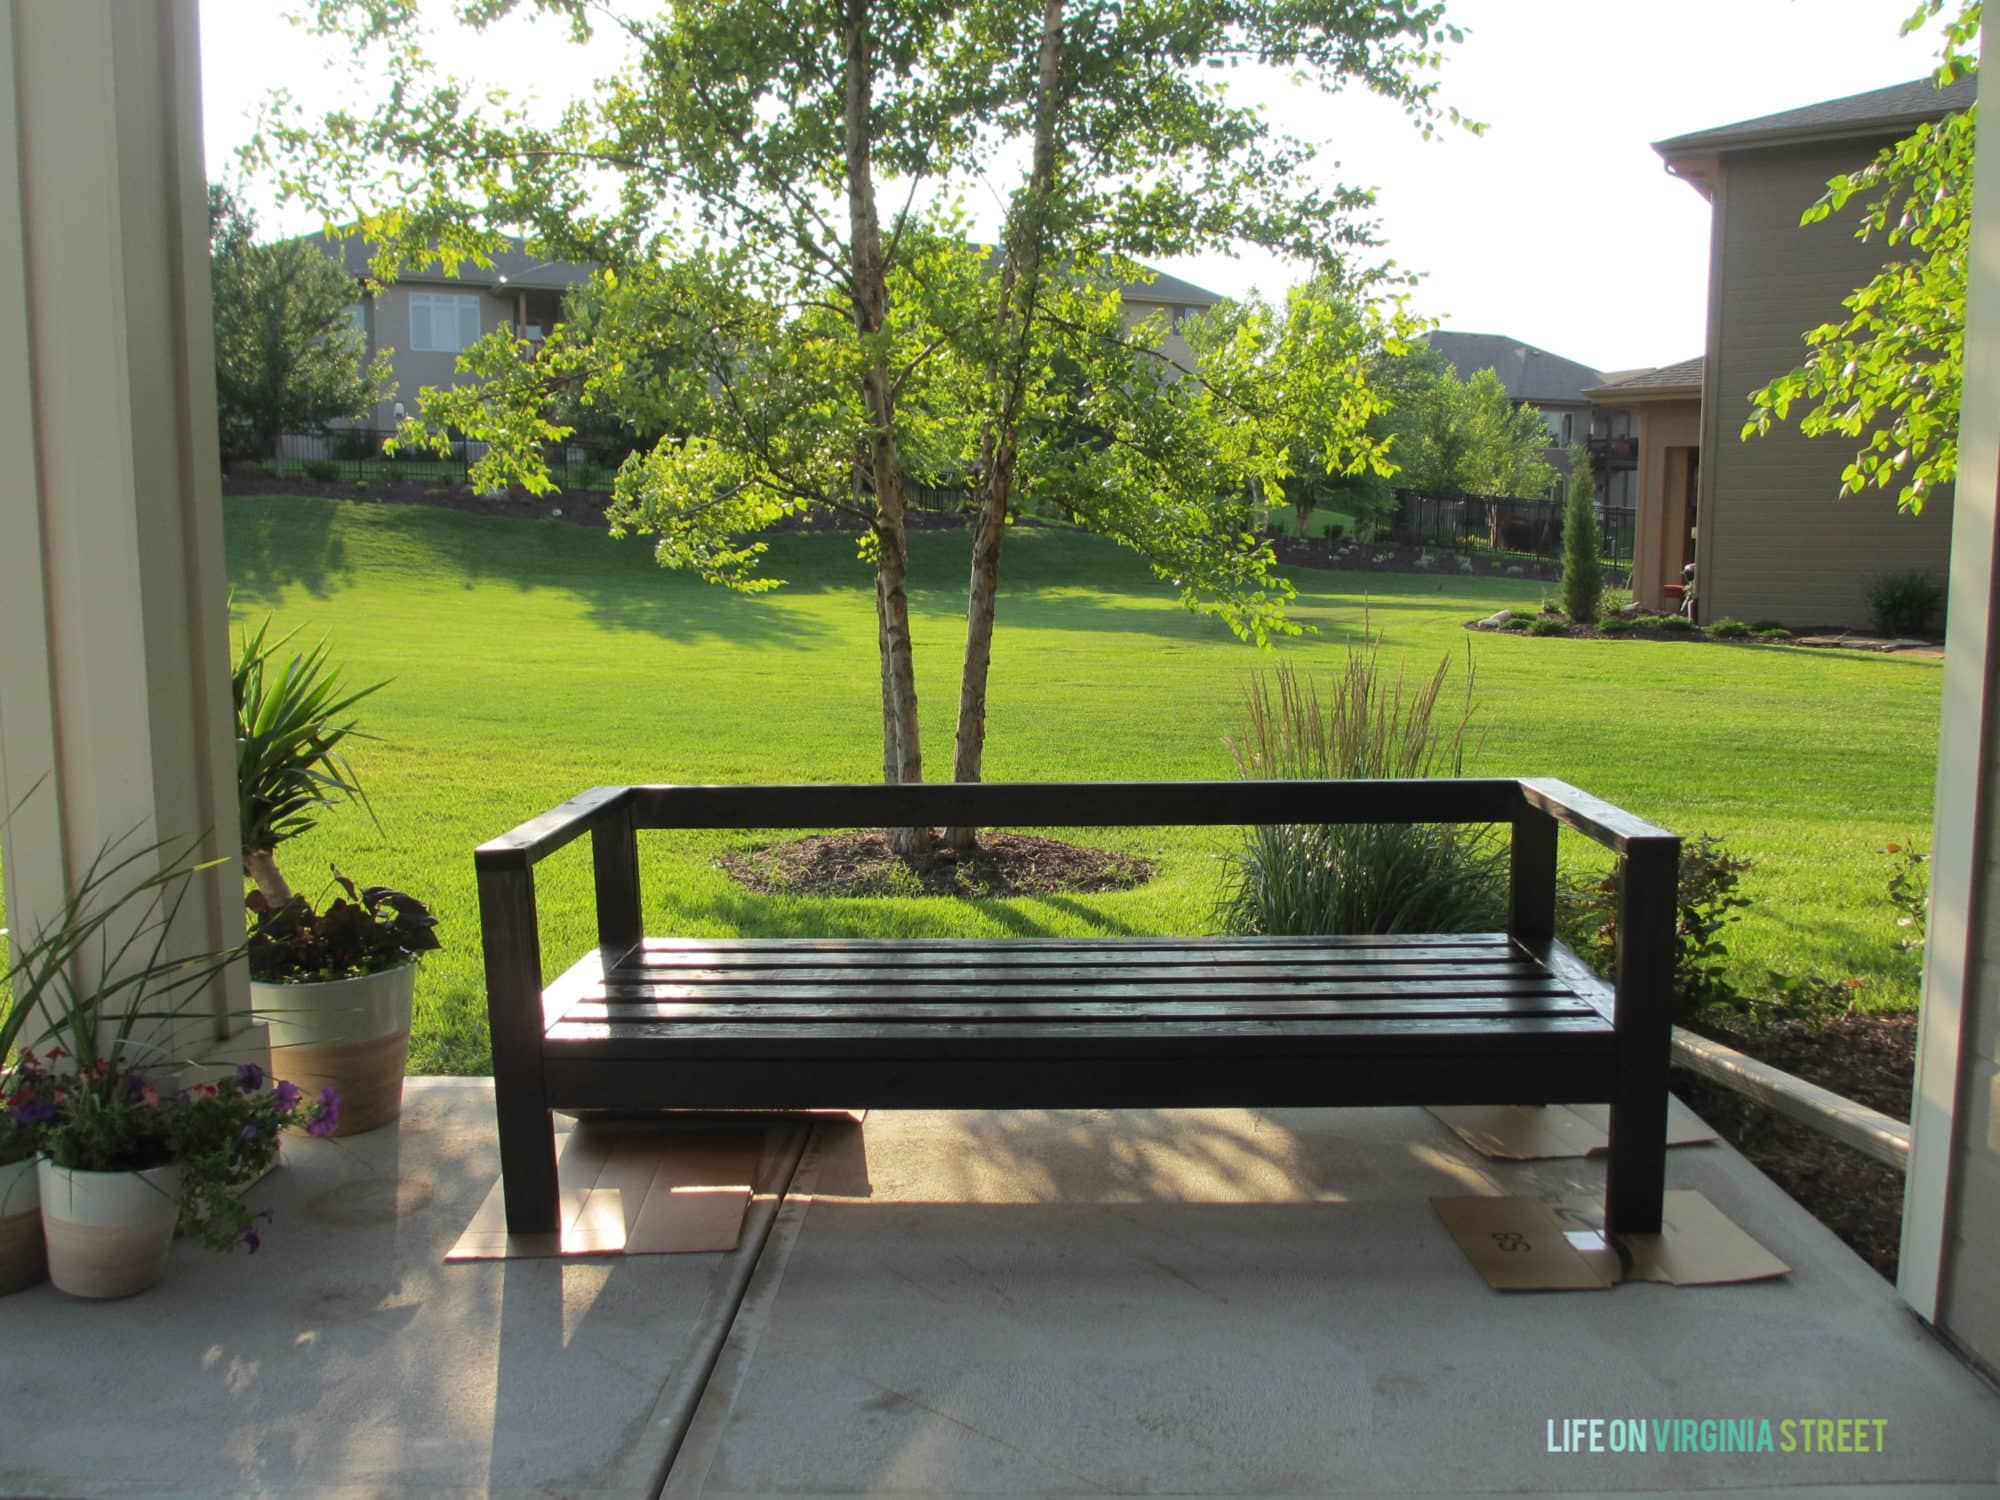 Diy outdoor sofa - Diy Outdoor Couch Wood Stain 2